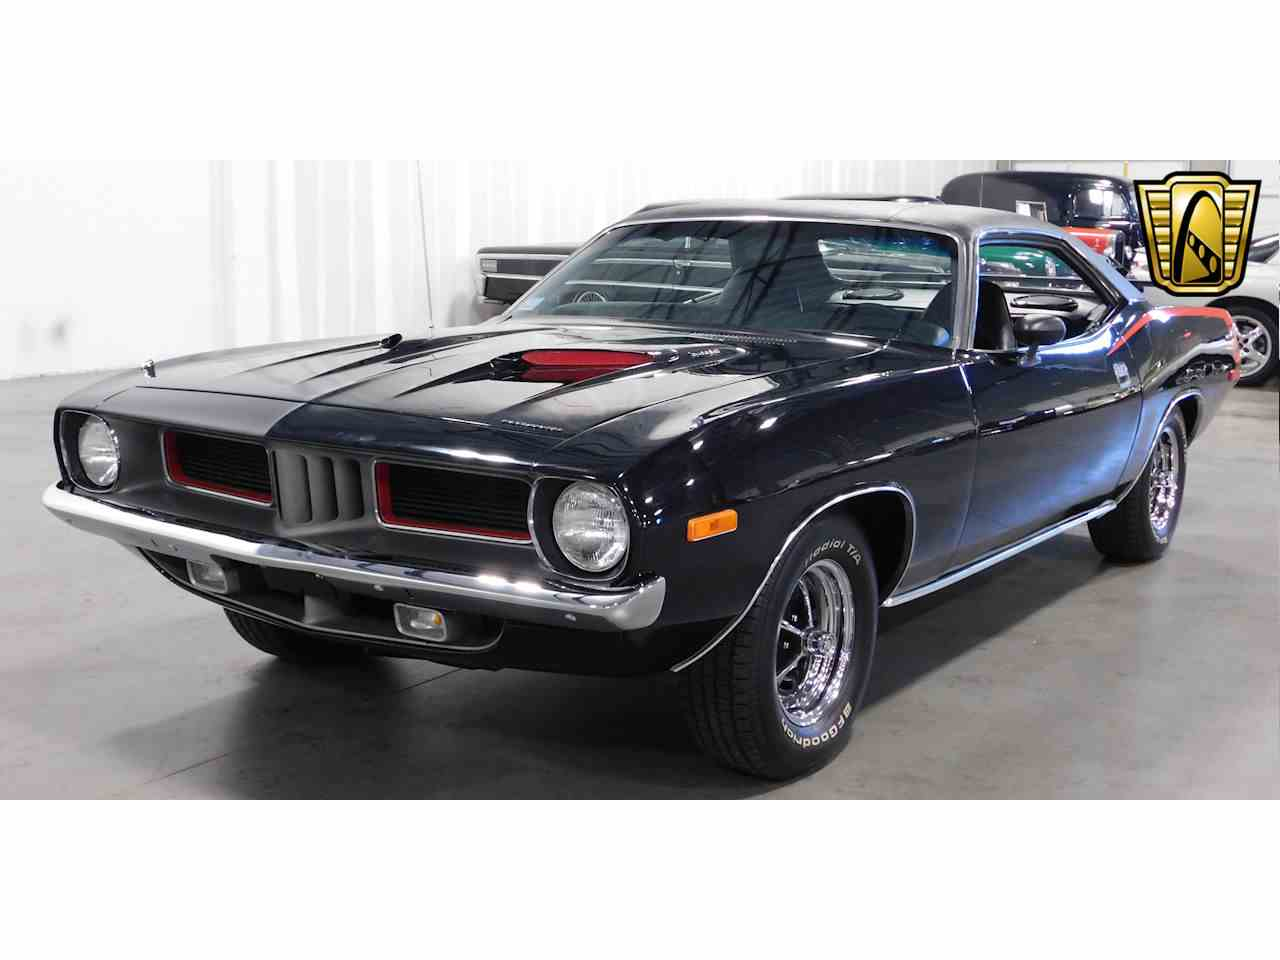 Large Picture of Classic '72 Plymouth Barracuda located in Georgia Offered by Gateway Classic Cars - Atlanta - MZG1